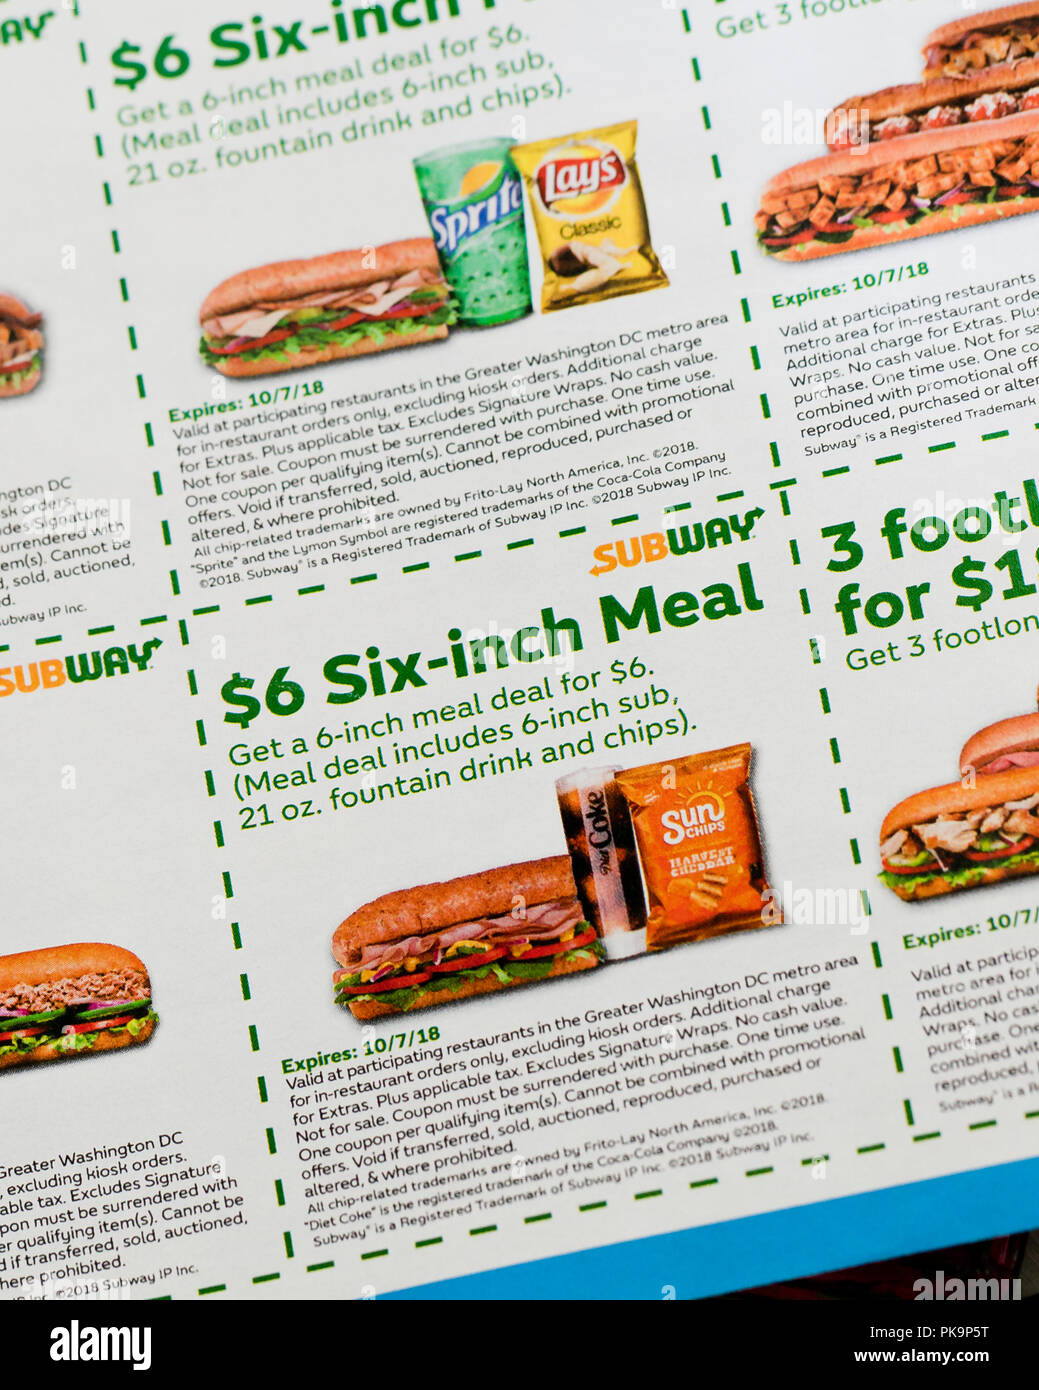 Subway Sandwich Coupons Fast Food Coupon Usa Stock Photo